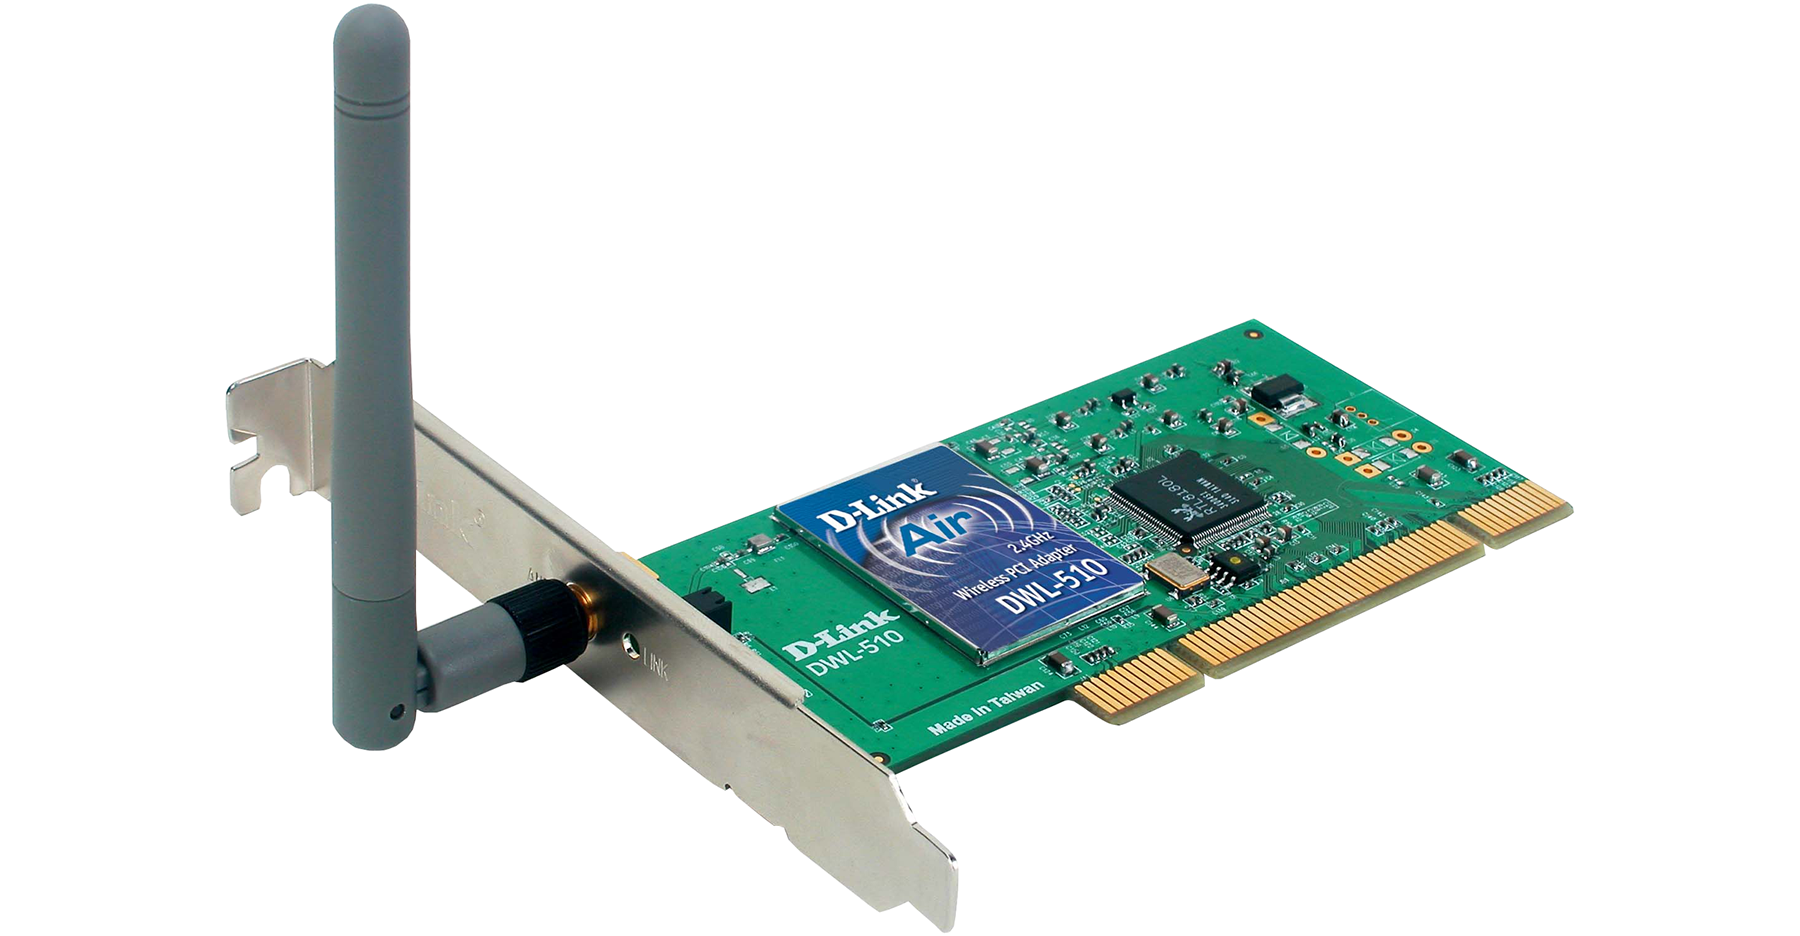 D LINK AIRPLUS G DWL G510 WIRELESS PCI CARD DRIVERS FOR WINDOWS 8